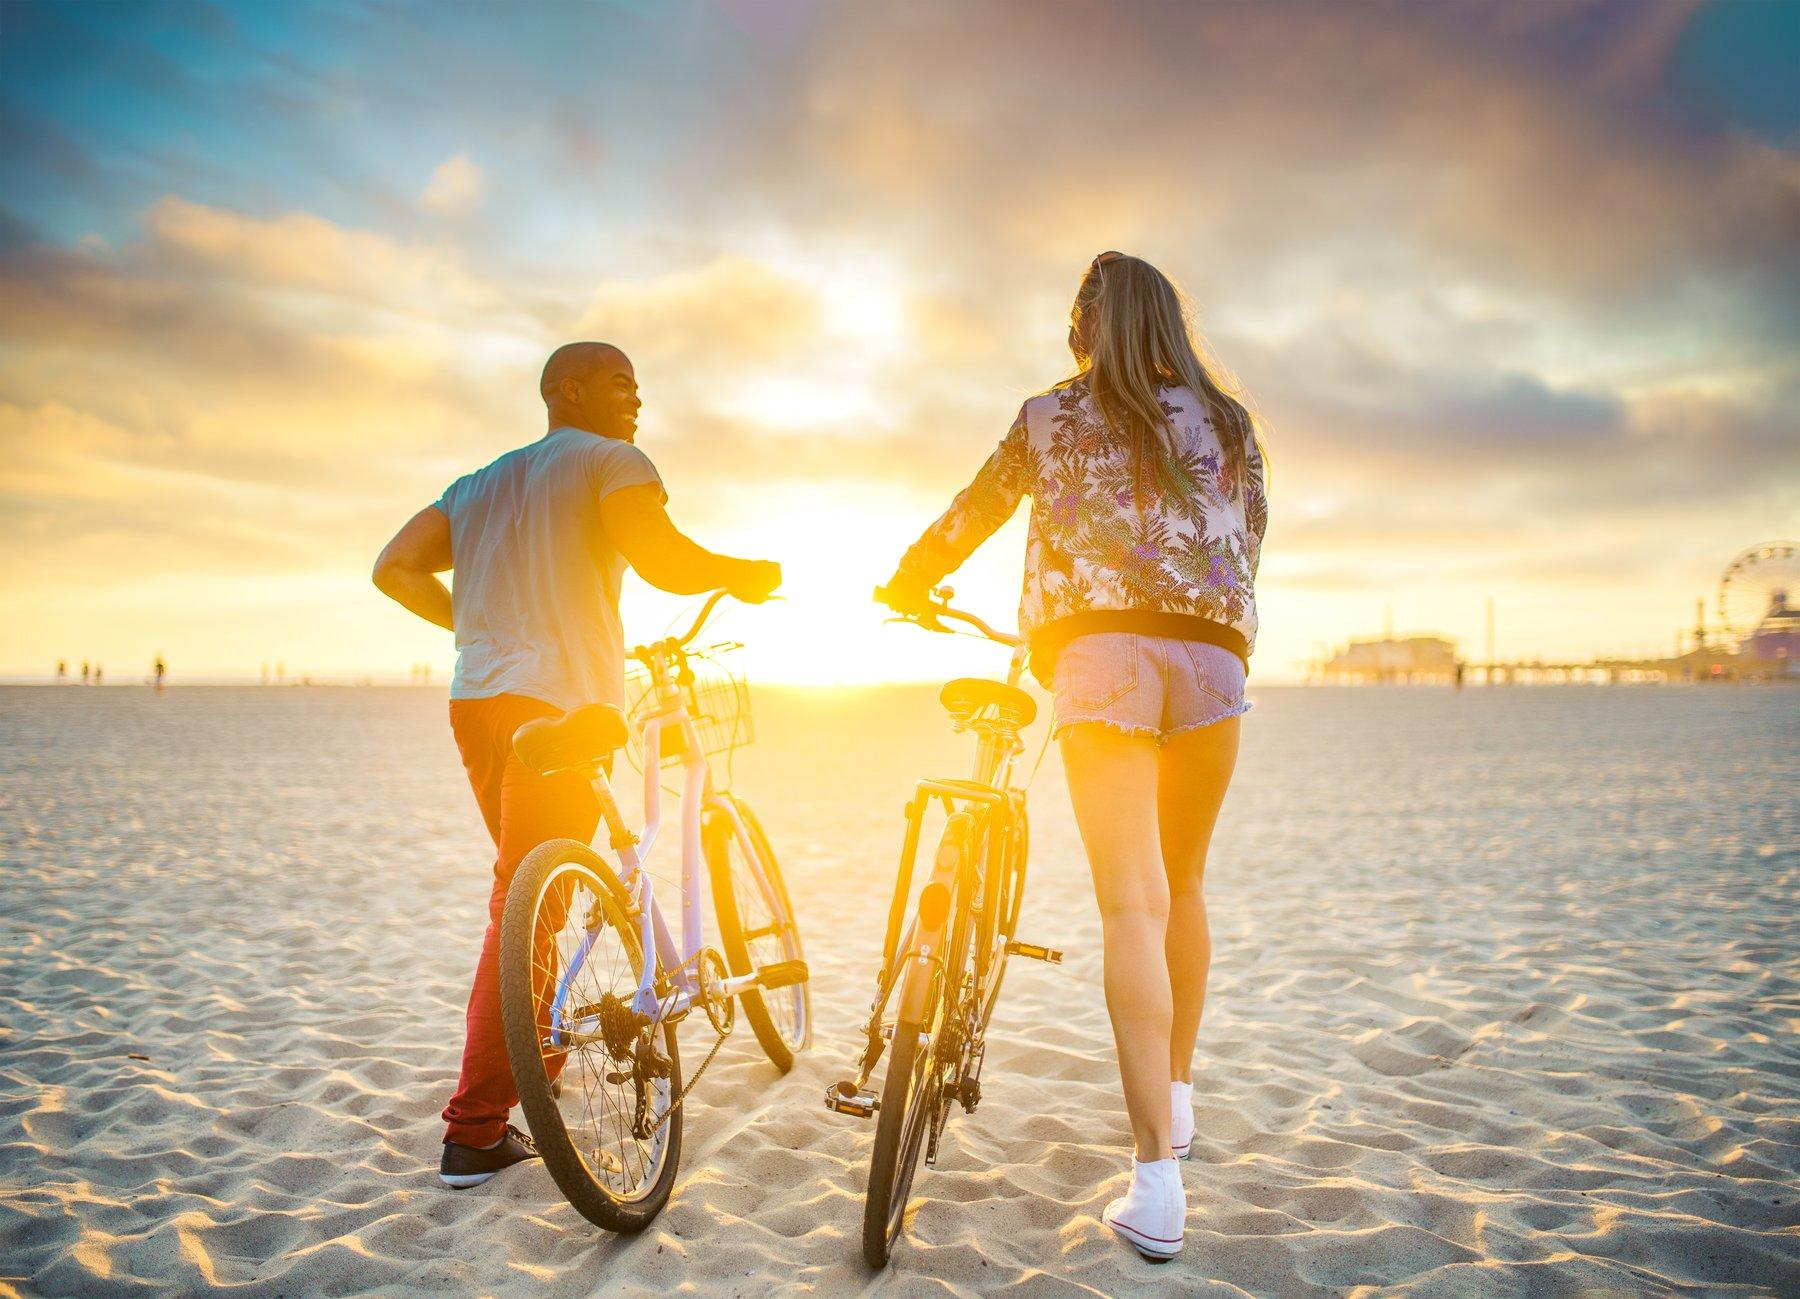 Two friends walking their bikes through the beach sand